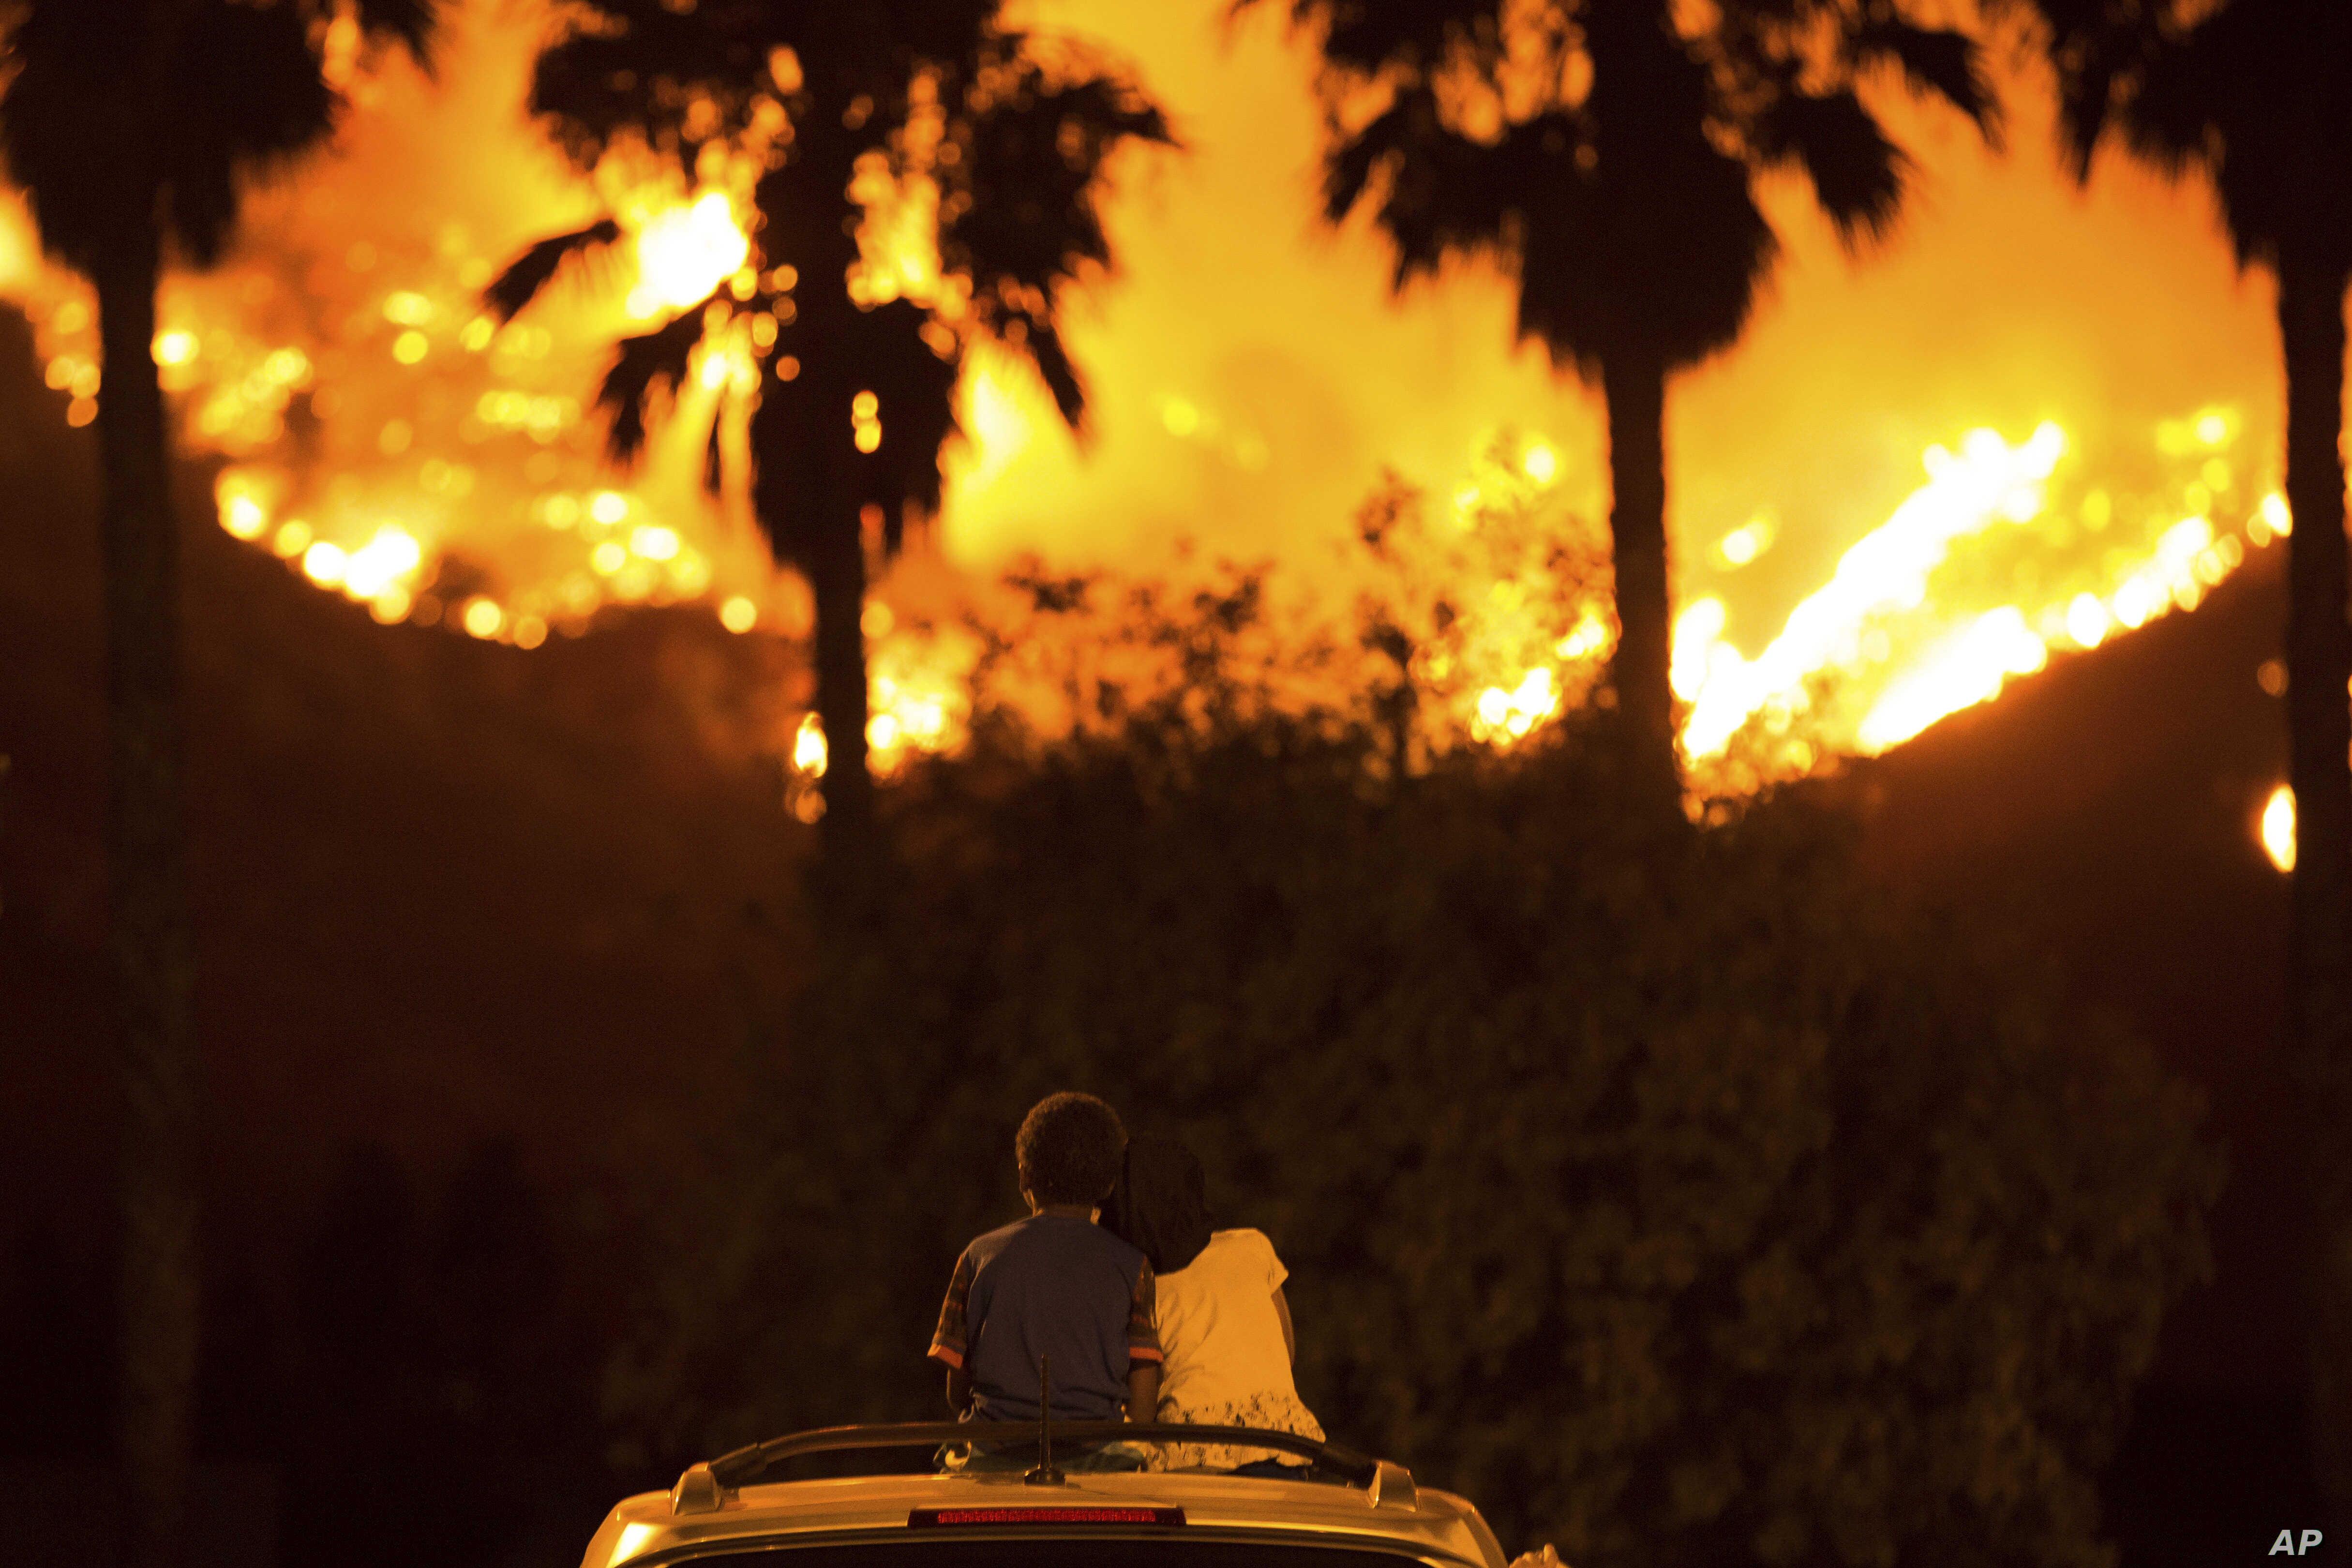 King Bass, 6 (L) sits and watches the Holy Fire burn from on top of his parents' car as his sister Princess, 5, rests her head on his shoulder, Aug. 9, 2018 in Lake Elsinore, Calif.